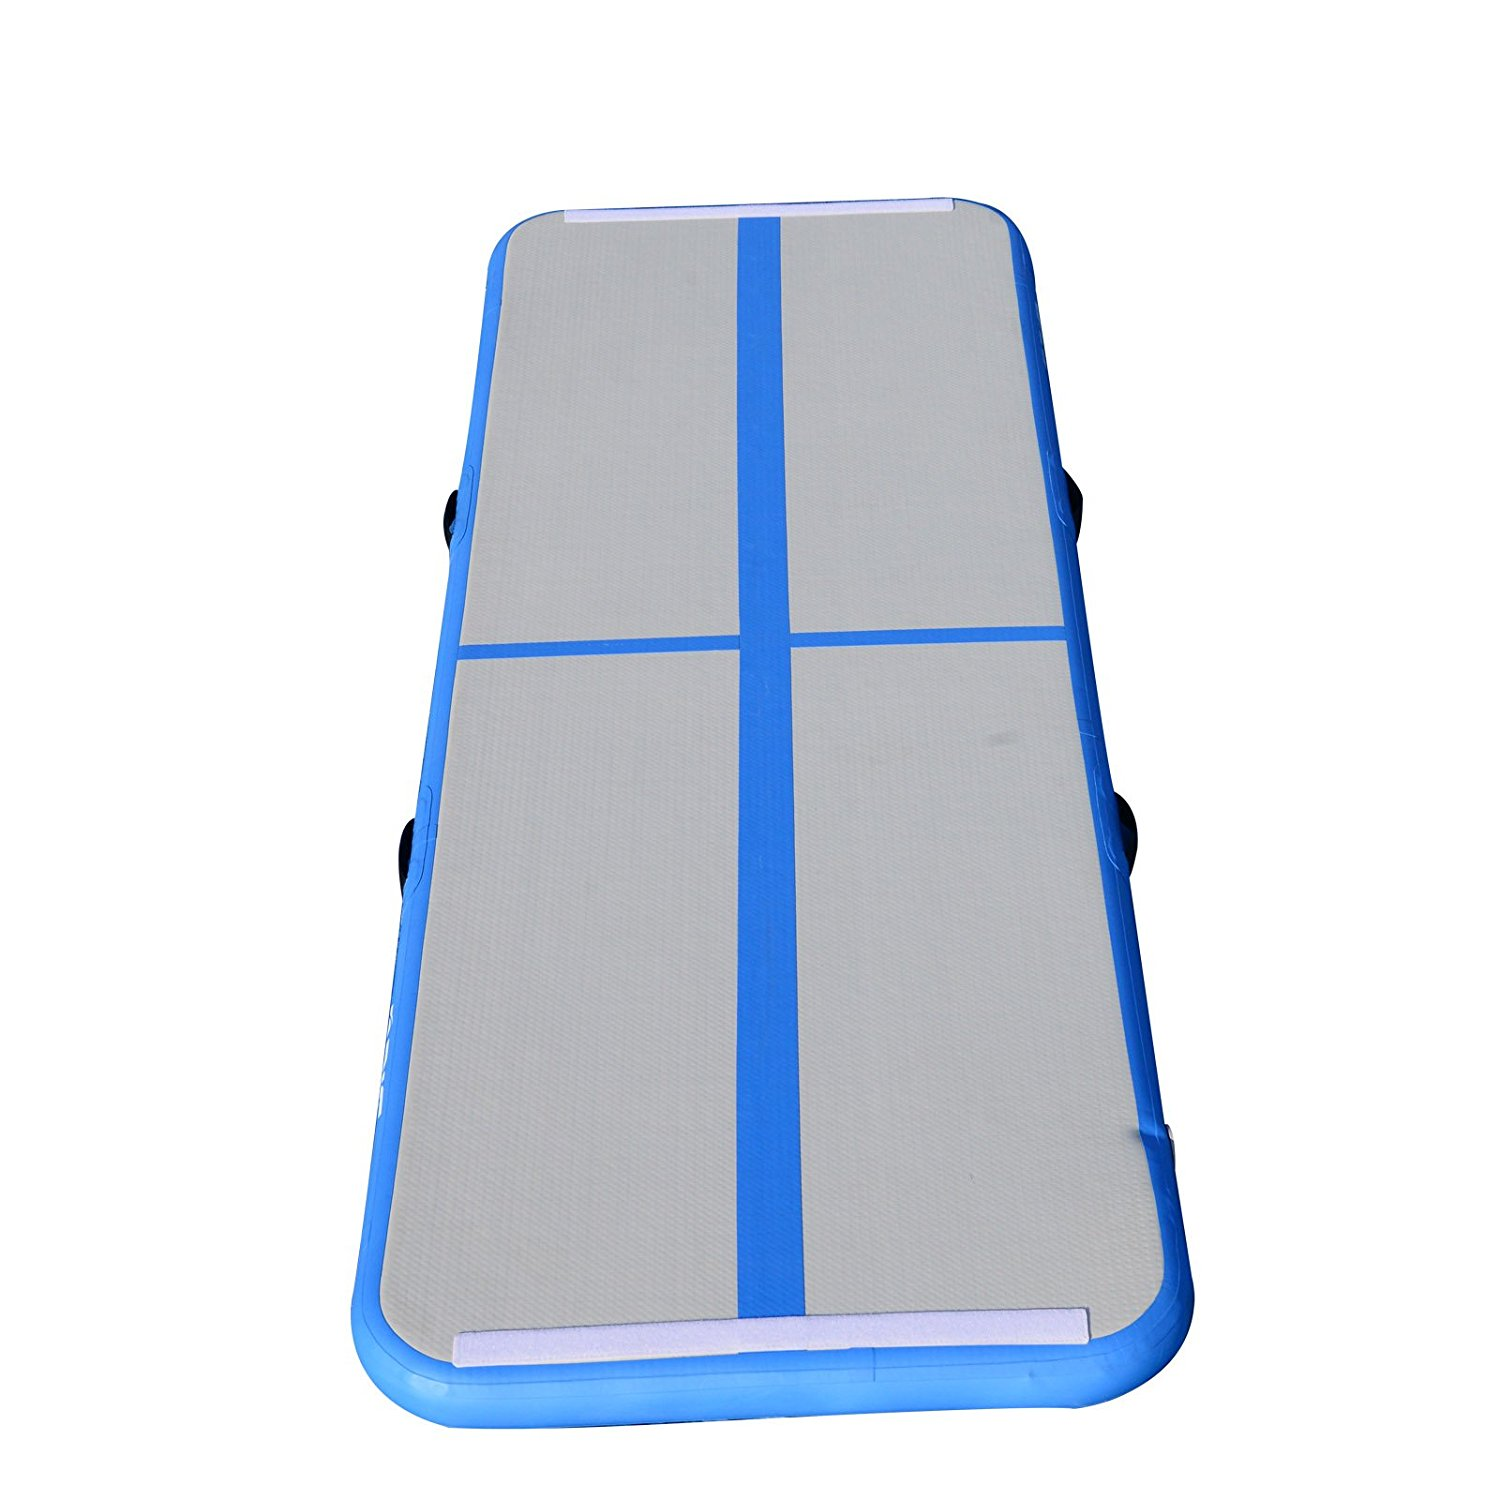 Air Track Floor Home Gymnastics Tumbing Mat Inflatable Air Training track GYM Blue by BRIS